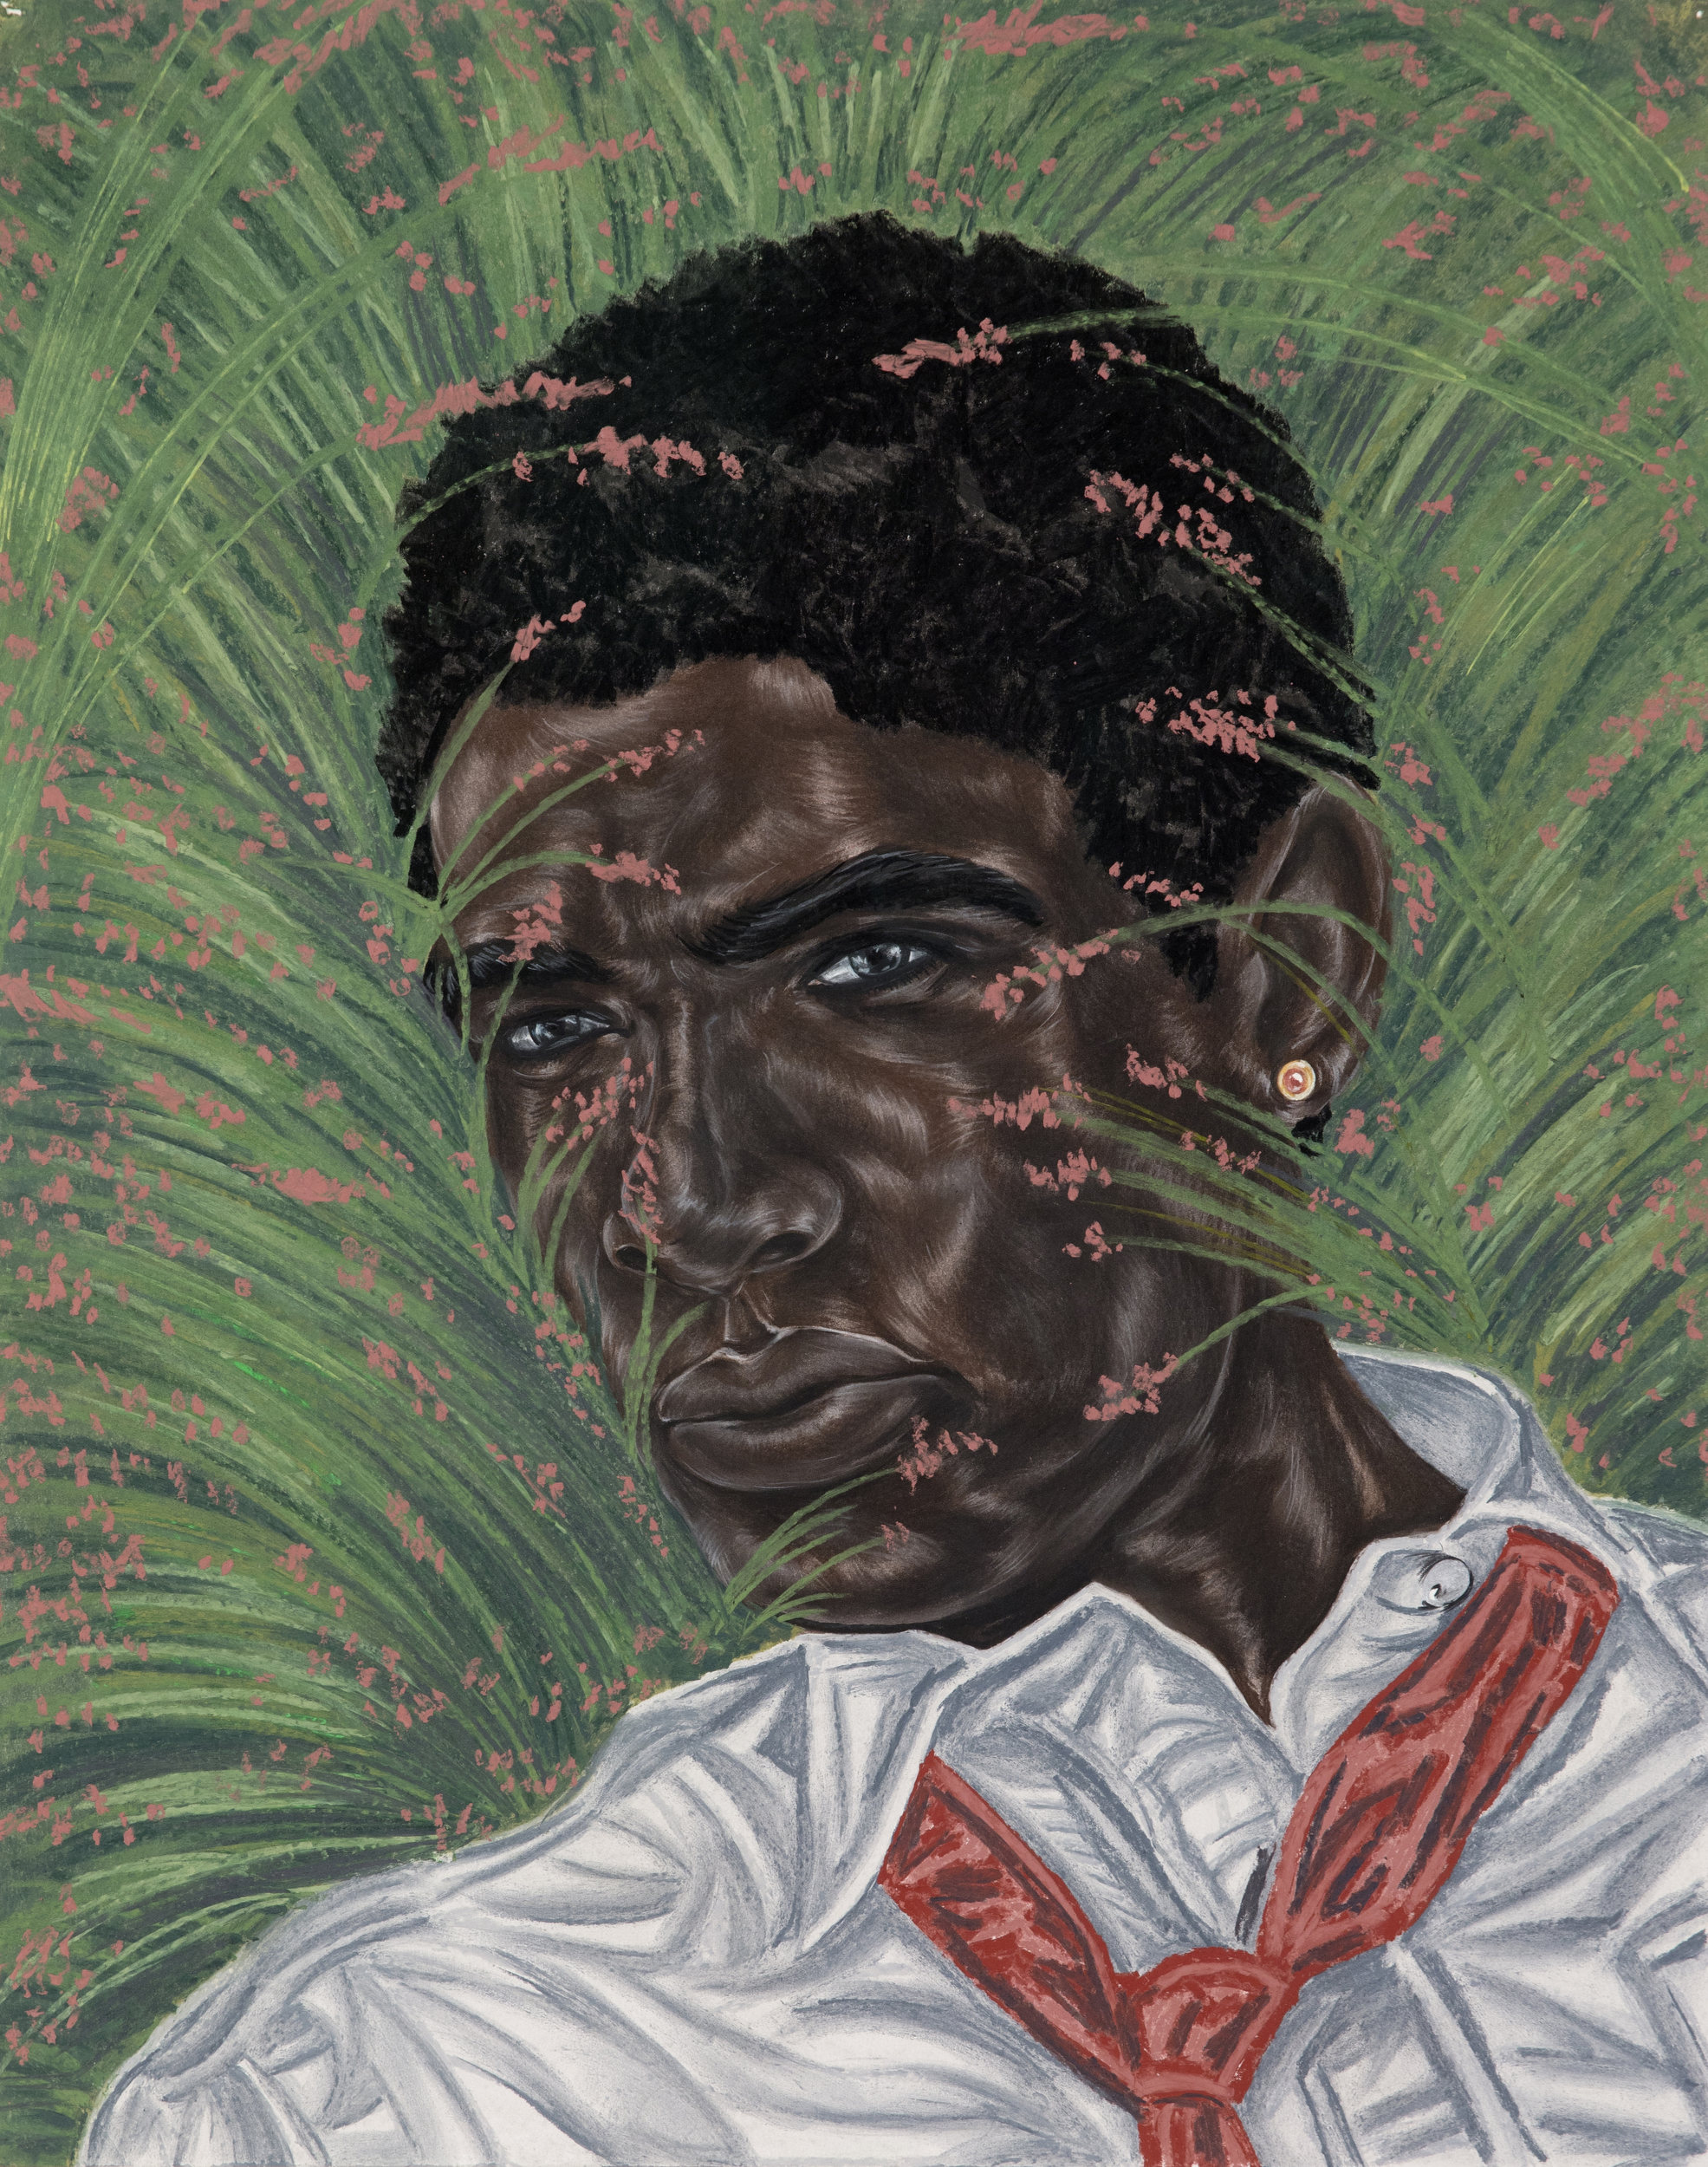 Toyin Ojih Odutola (b. 1985),  Between the Margins , 2017. Charcoal, pastel and pencil on paper, 24 x 19 in. ©Toyin Ojih Odutola.  Courtesy of the artist and Jack Shainman Gallery, New York